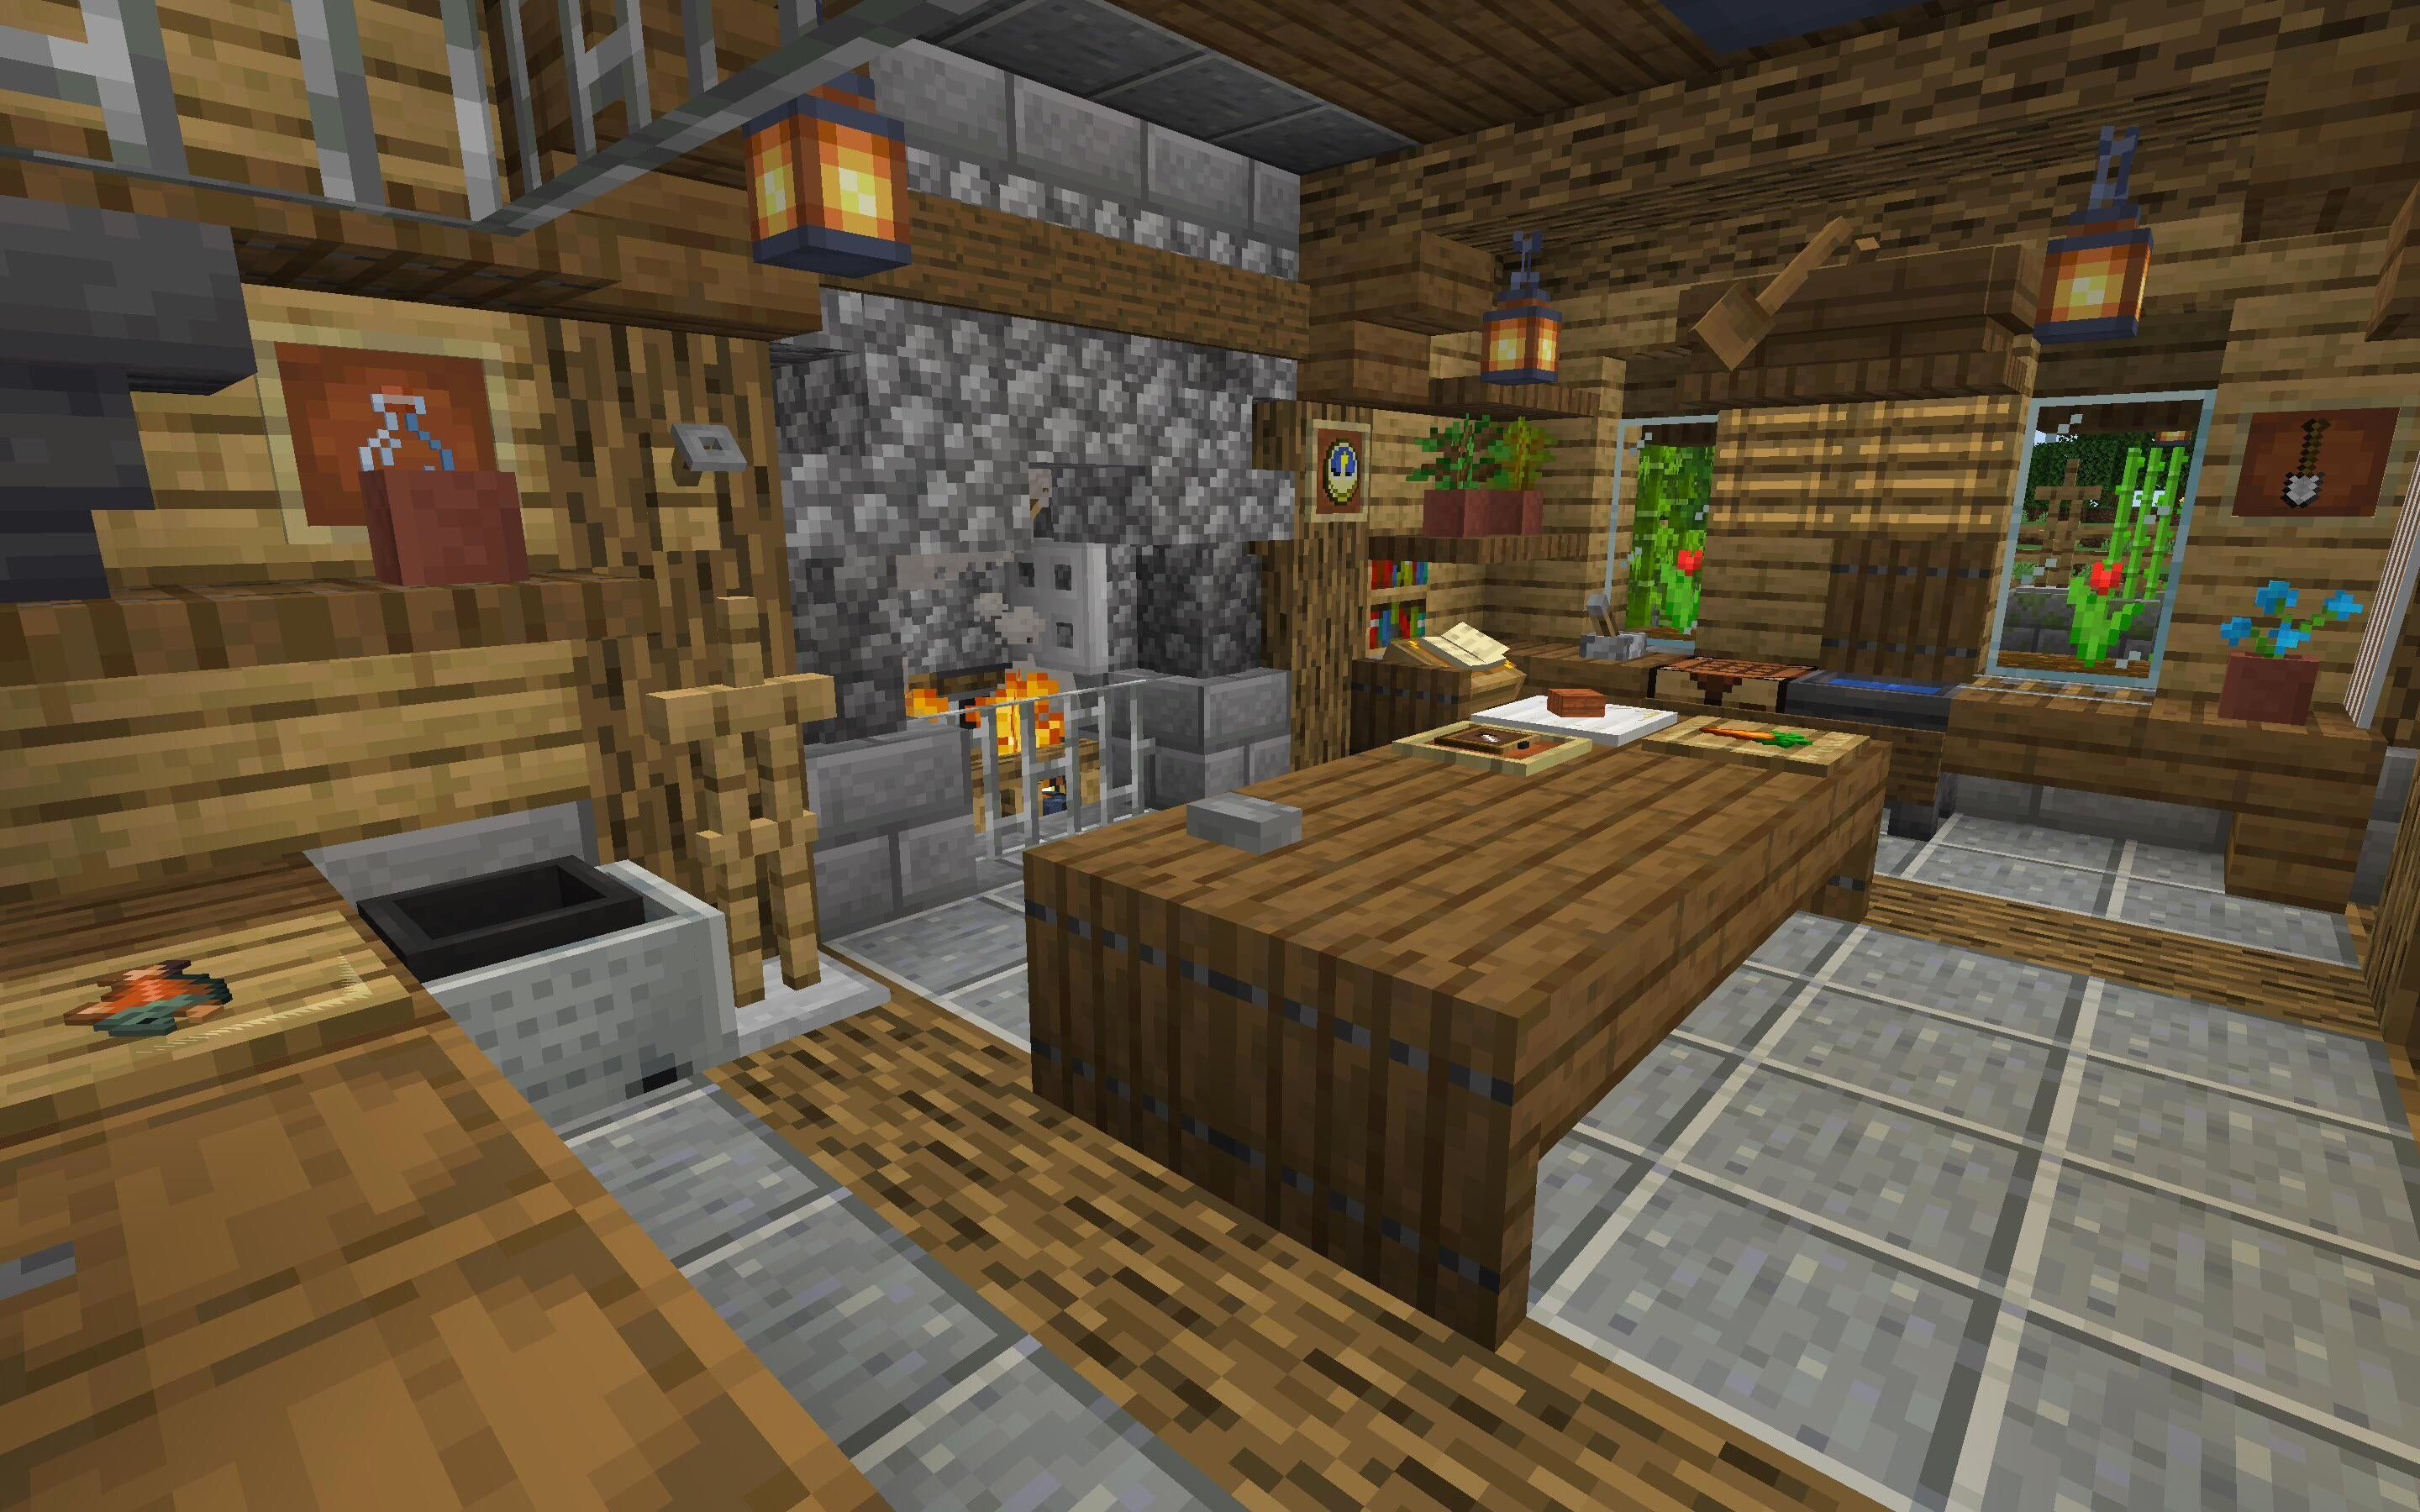 Pin by Catherine Leslie on Random Shit Cool minecraft